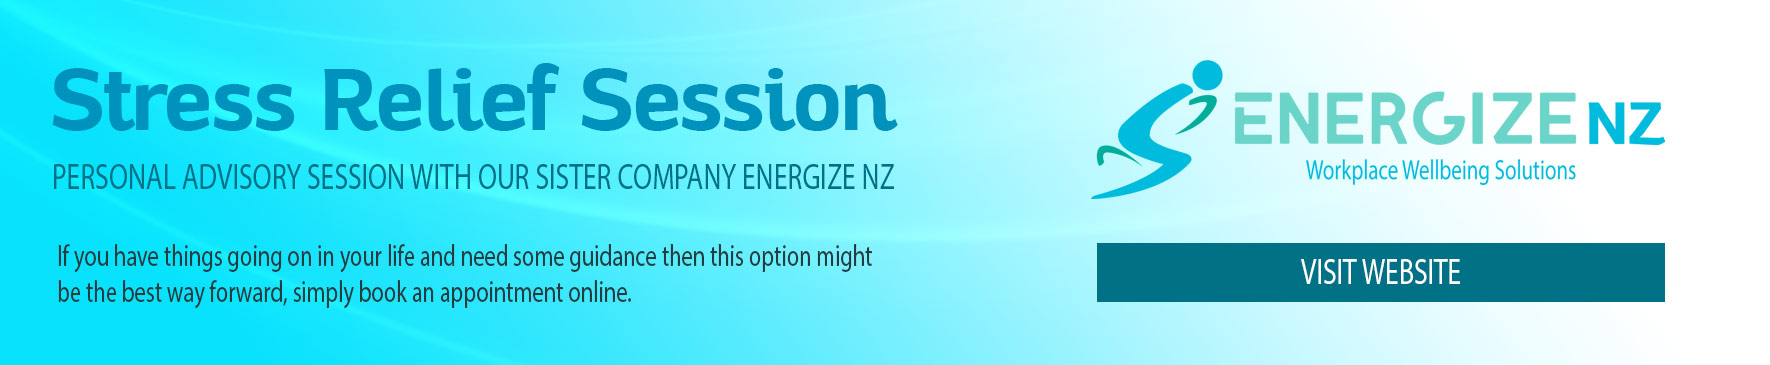 Energize NZ Stress Relief Session